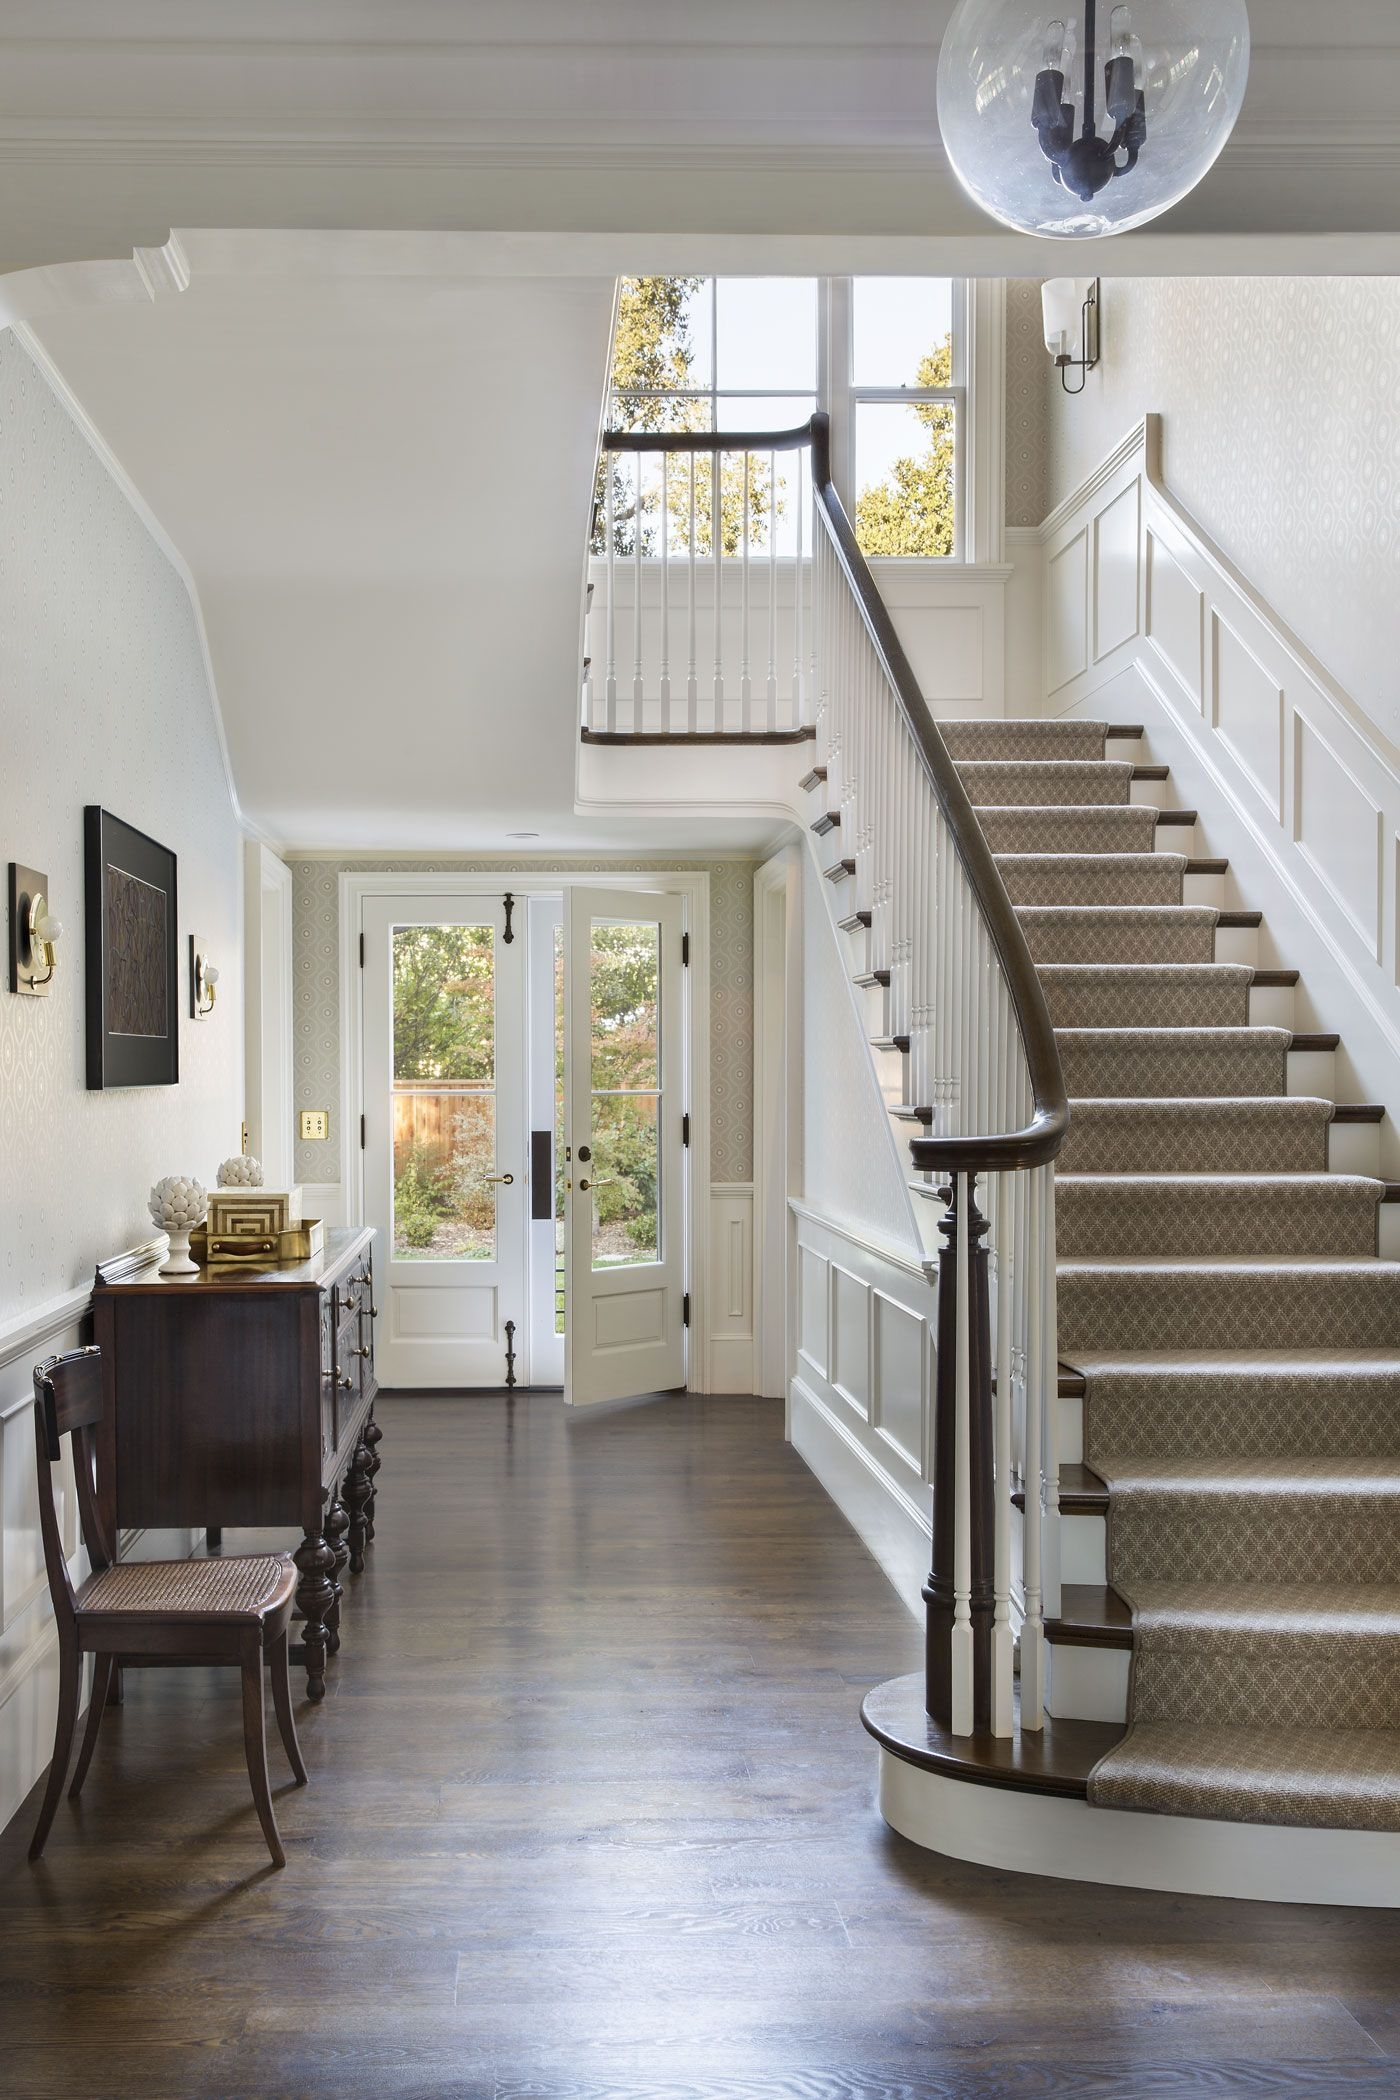 25 Stunning Carpeted Staircase Ideas Most Beautiful Staircase | Staircase In Hall Design | 2 Storey House | Low Budget | Step Side Wall | Steel Verandah | Mansion